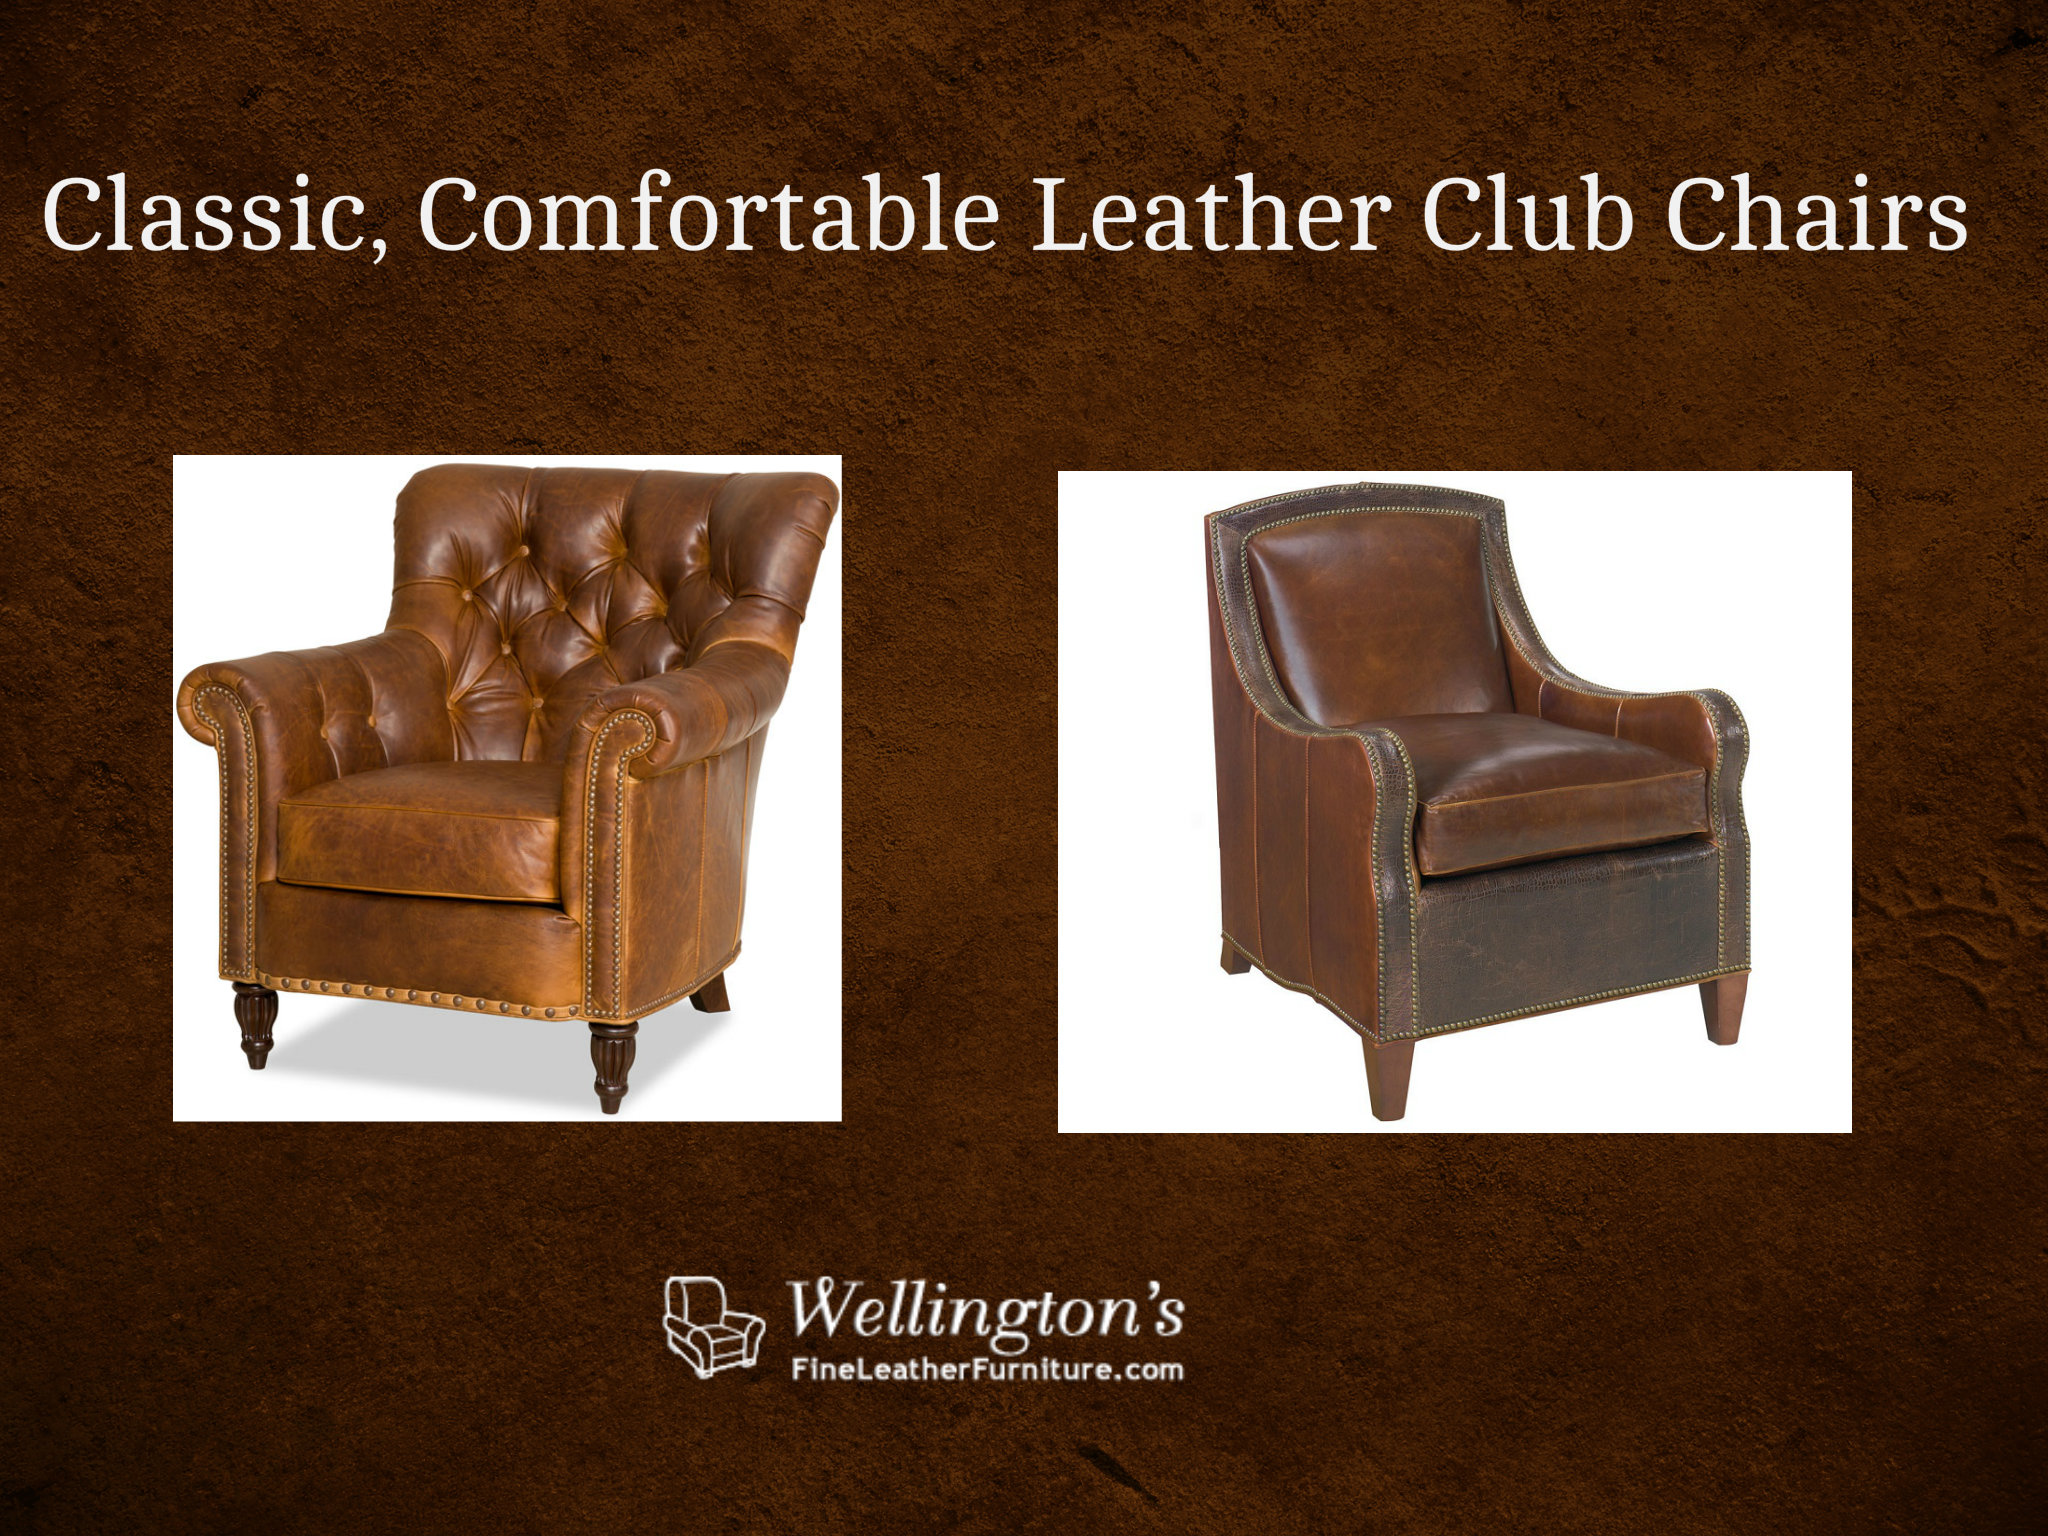 How to Select the Best Leather Club Chair